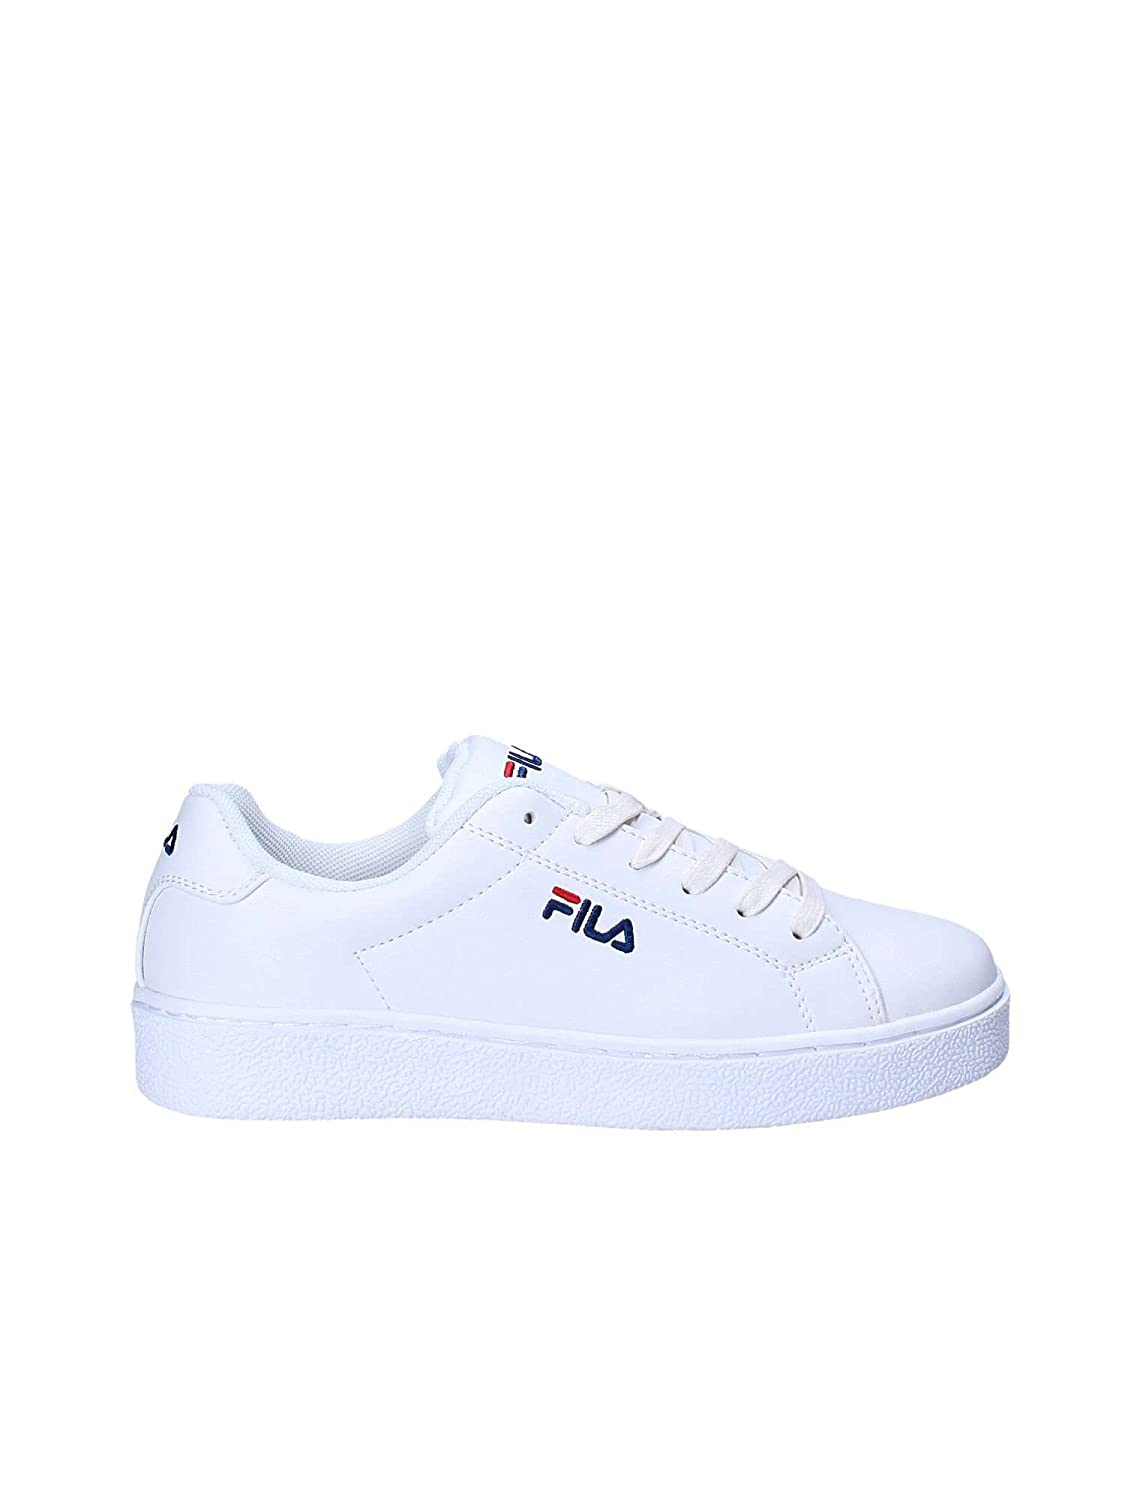 TALLA 39 EU. Fila Zapatillas UPSTAGE Low WMN 1010327